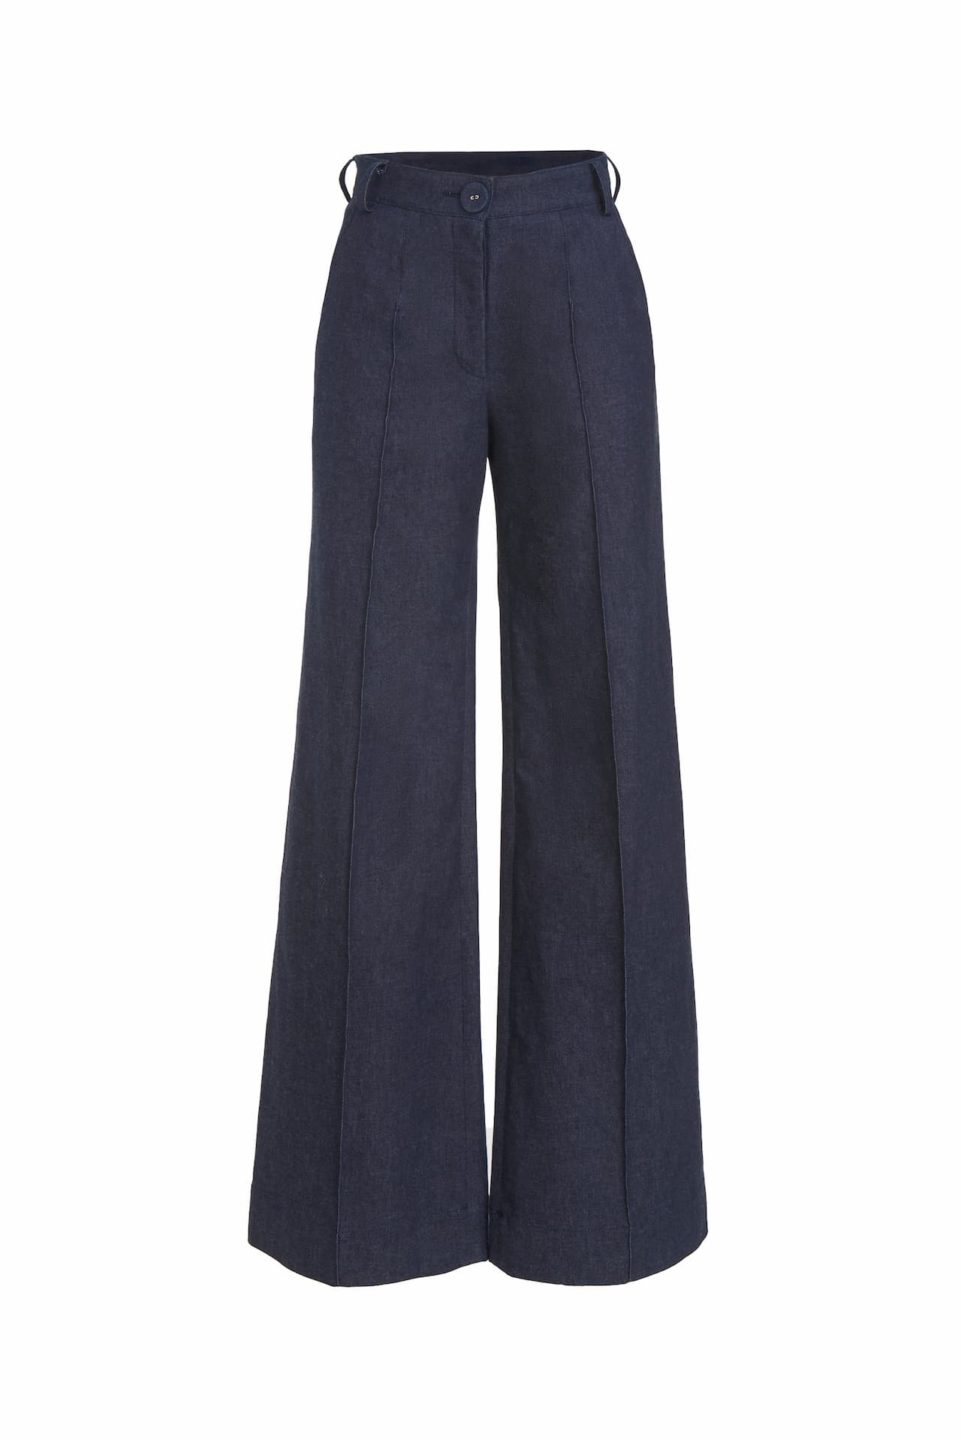 Zoey SS2128 Dark Blue High-Waisted Denim Pants with pintuch seams and coordinating belt